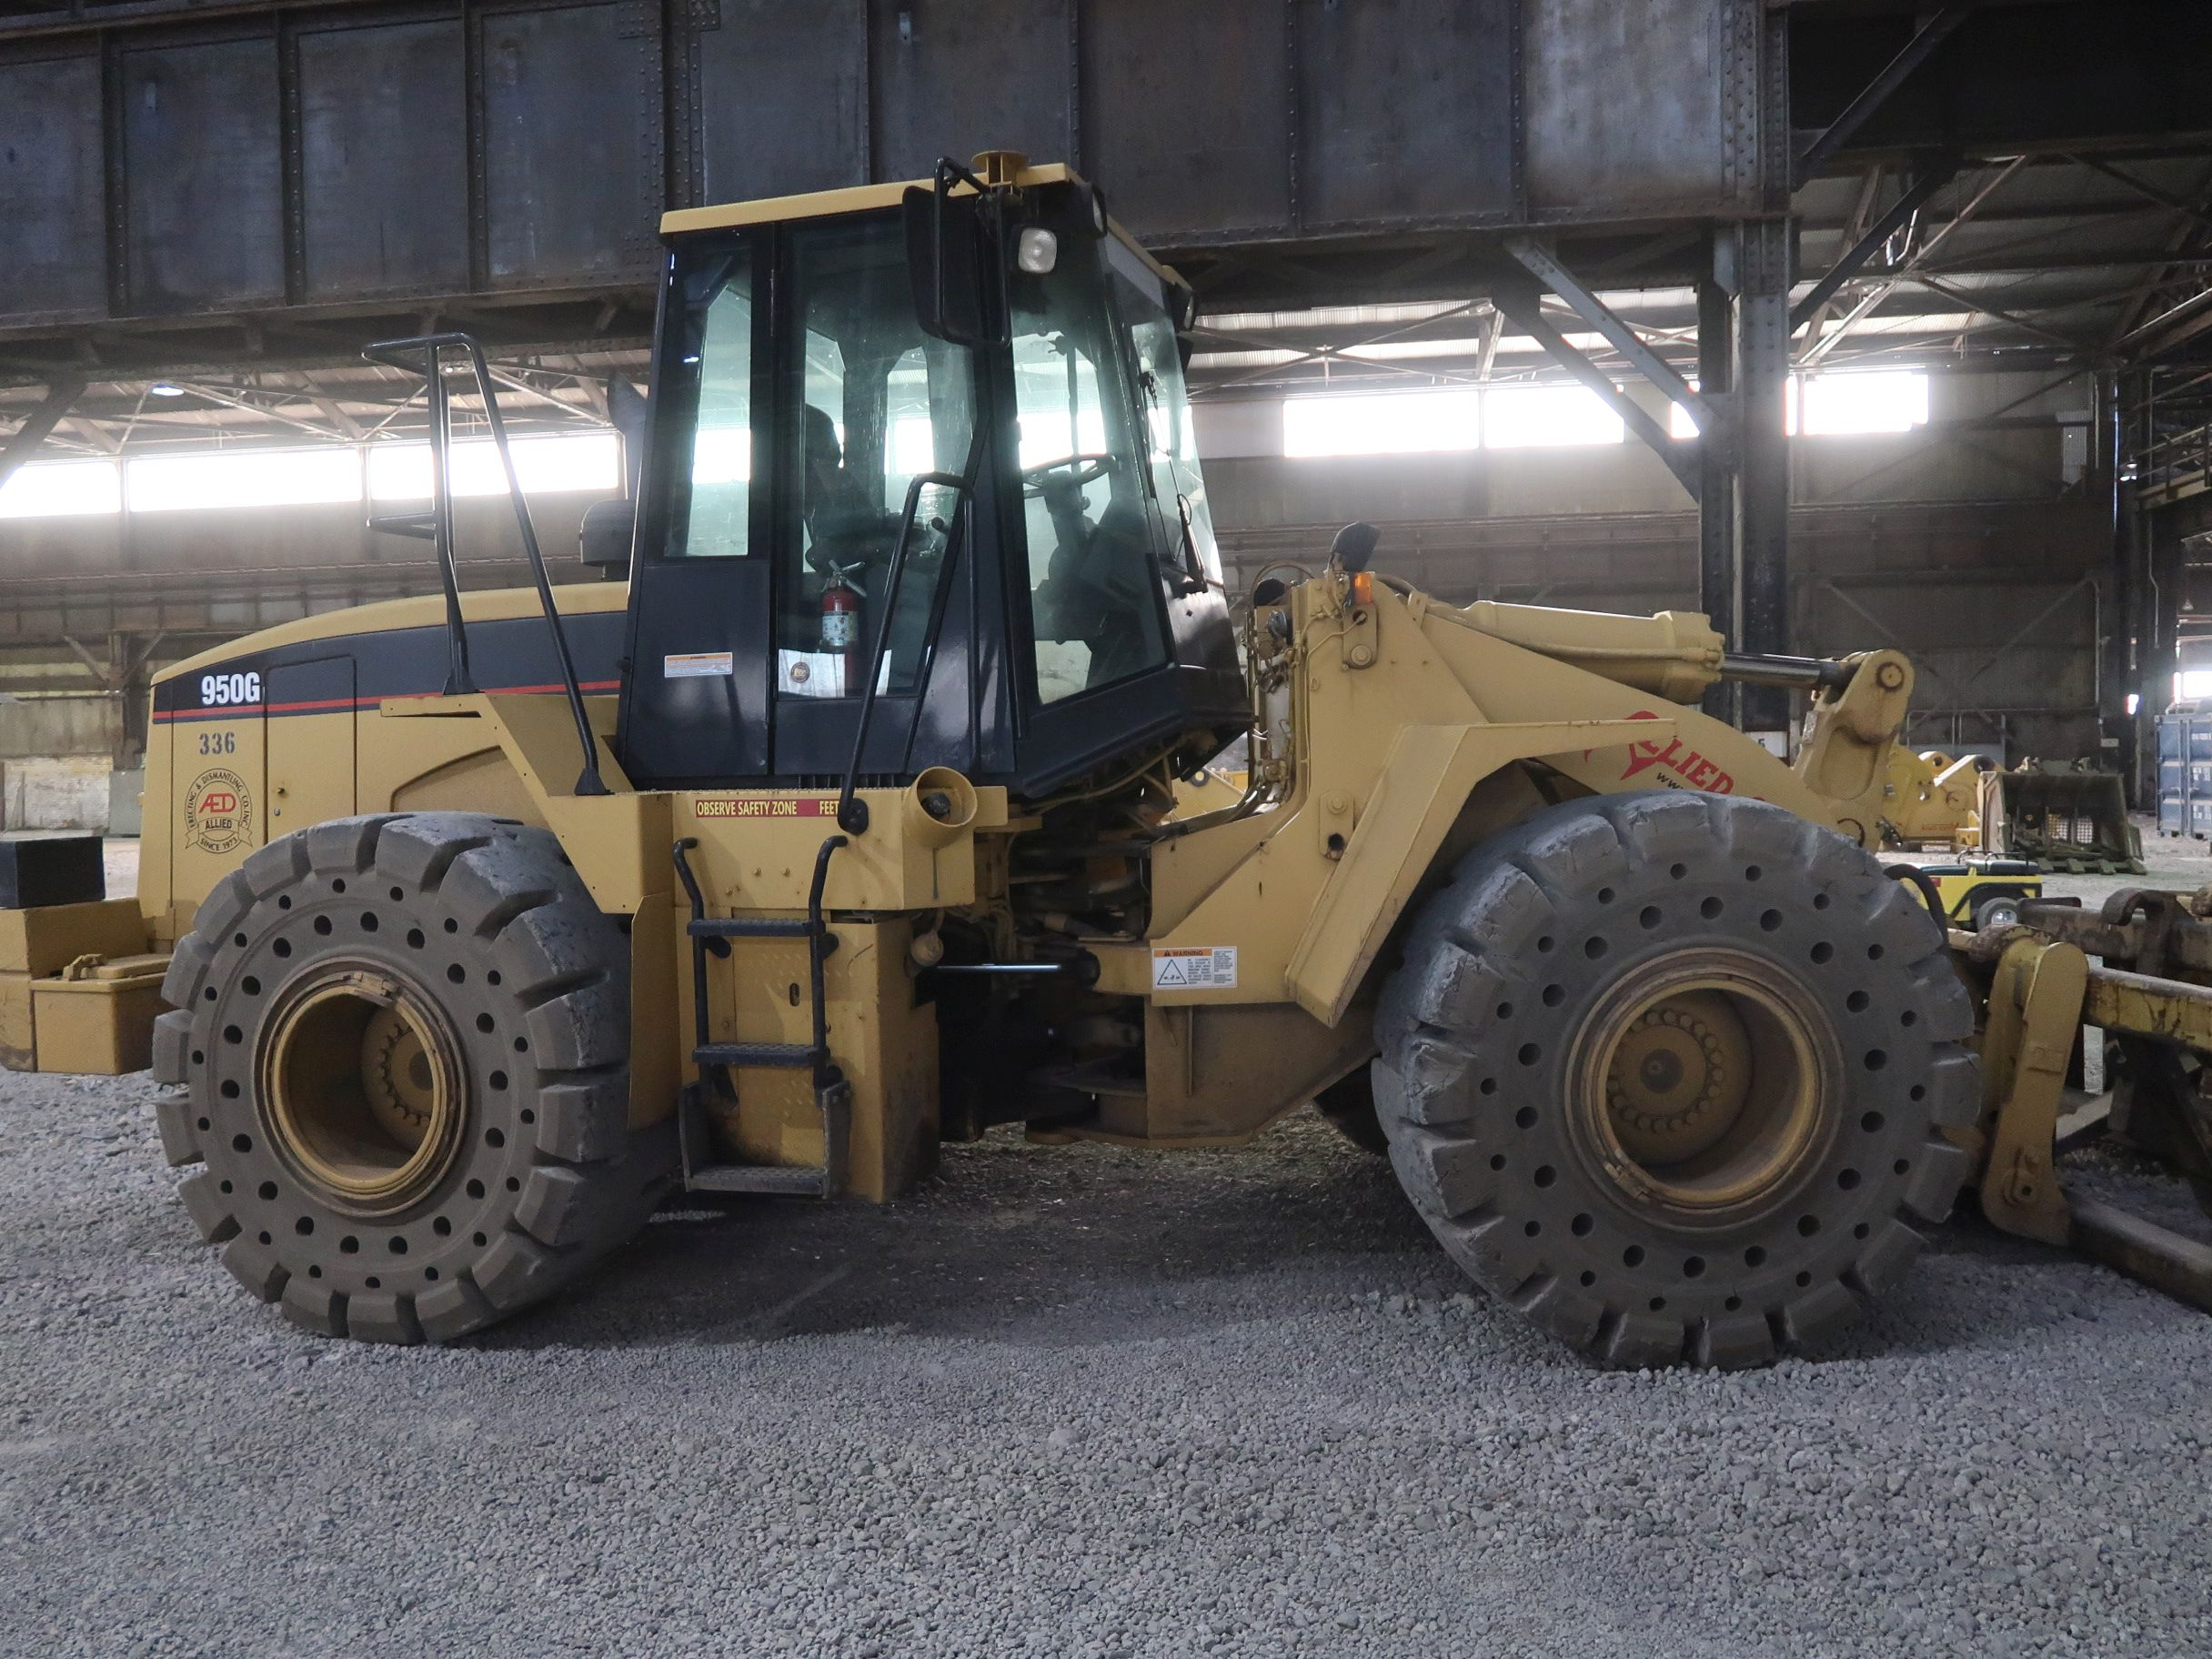 Lot 1042 - 2001 CATERPILLAR MODEL 950G ARTICULATING WHEEL LOADER; S/N 3JW01992, SOLID TIRES, QUICK